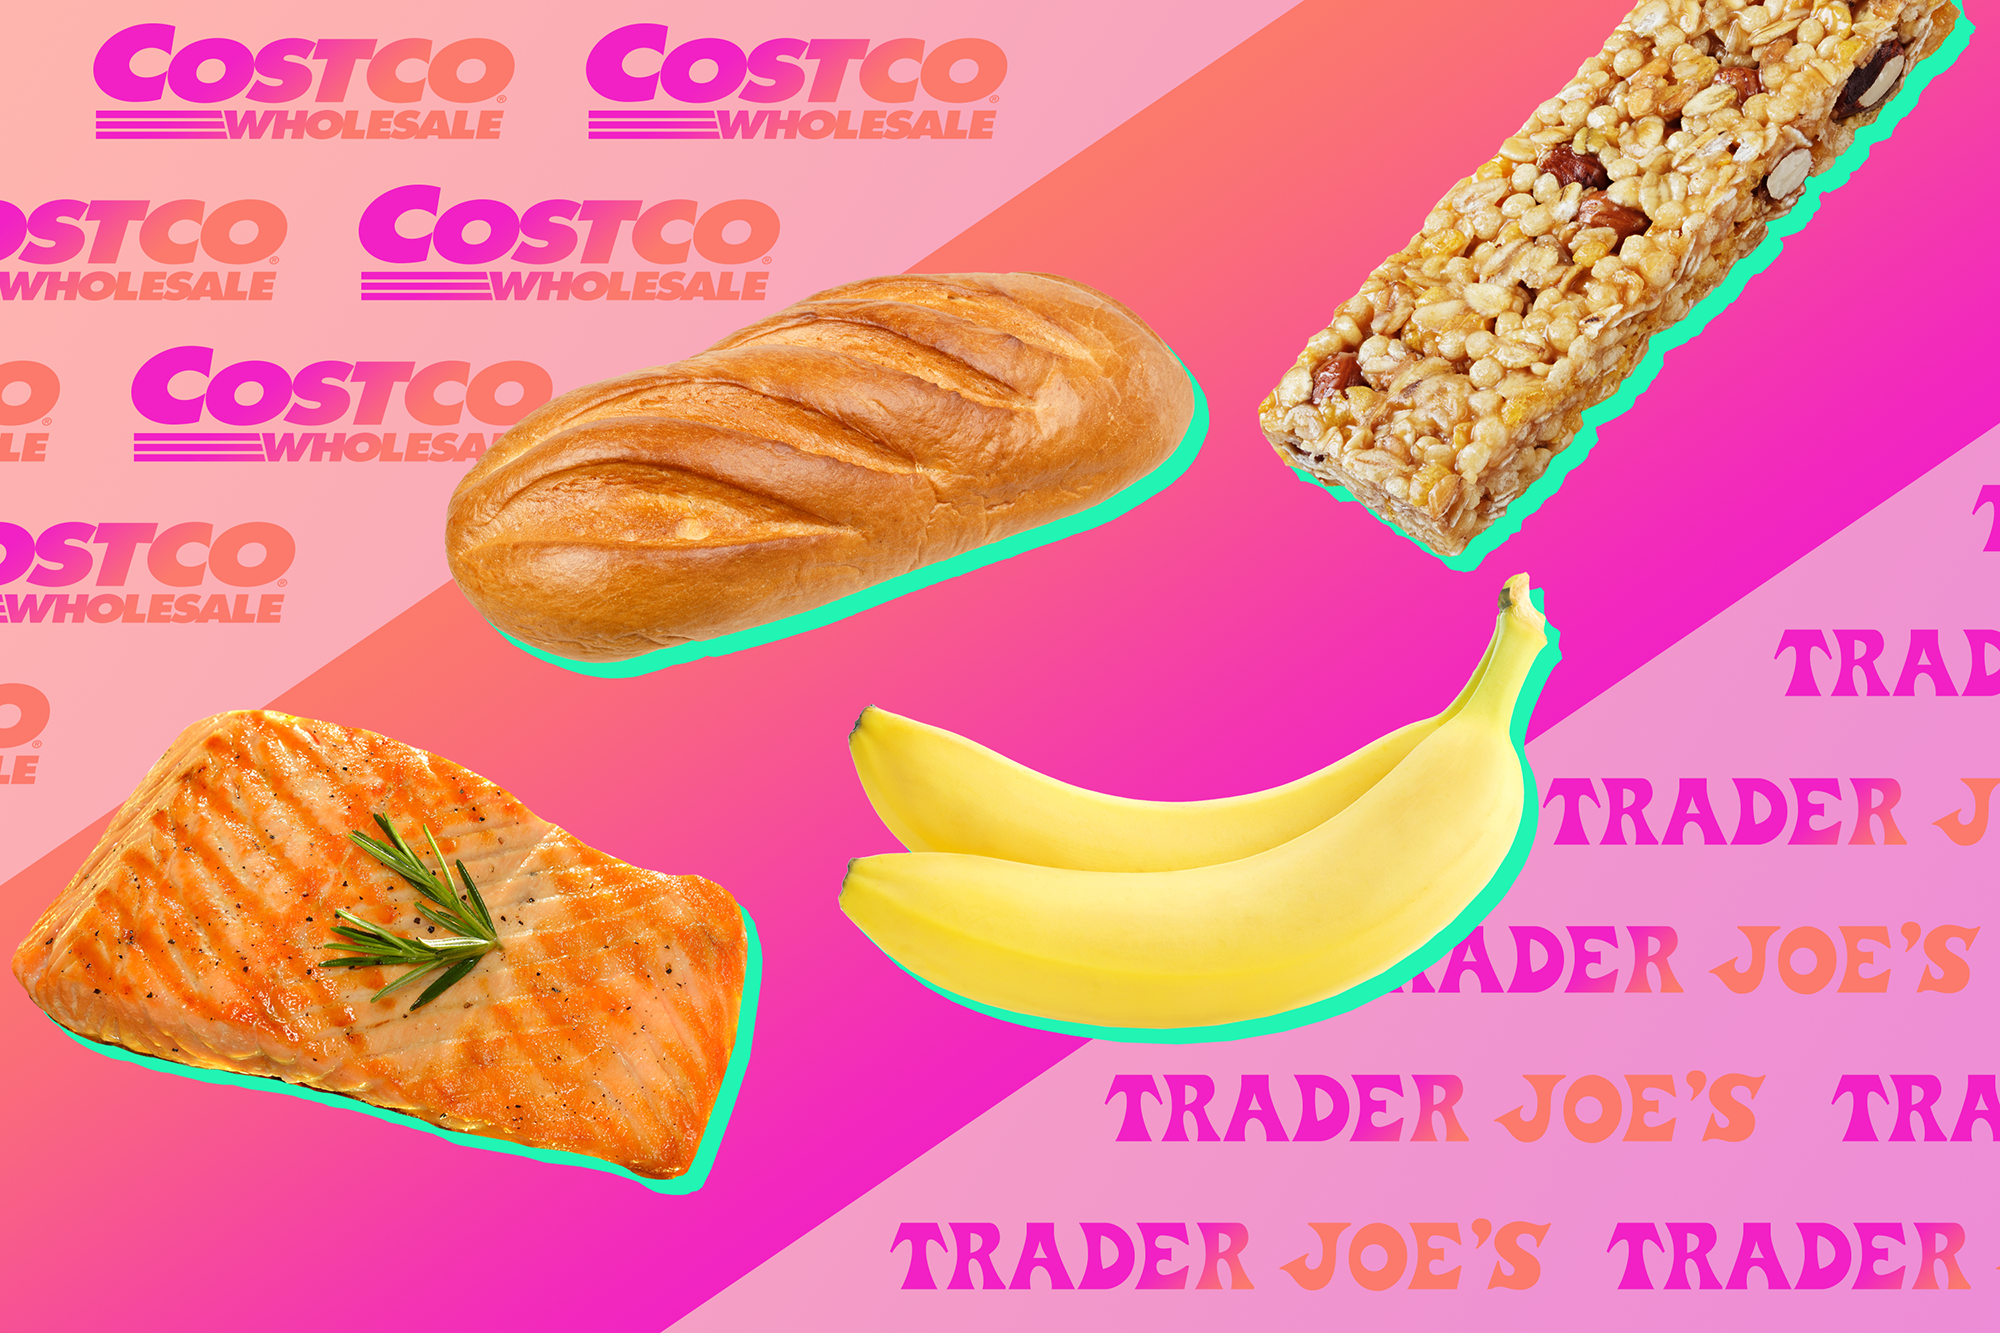 Costco Trader Joe's Food Cheaper Price Comparison | Kitchn